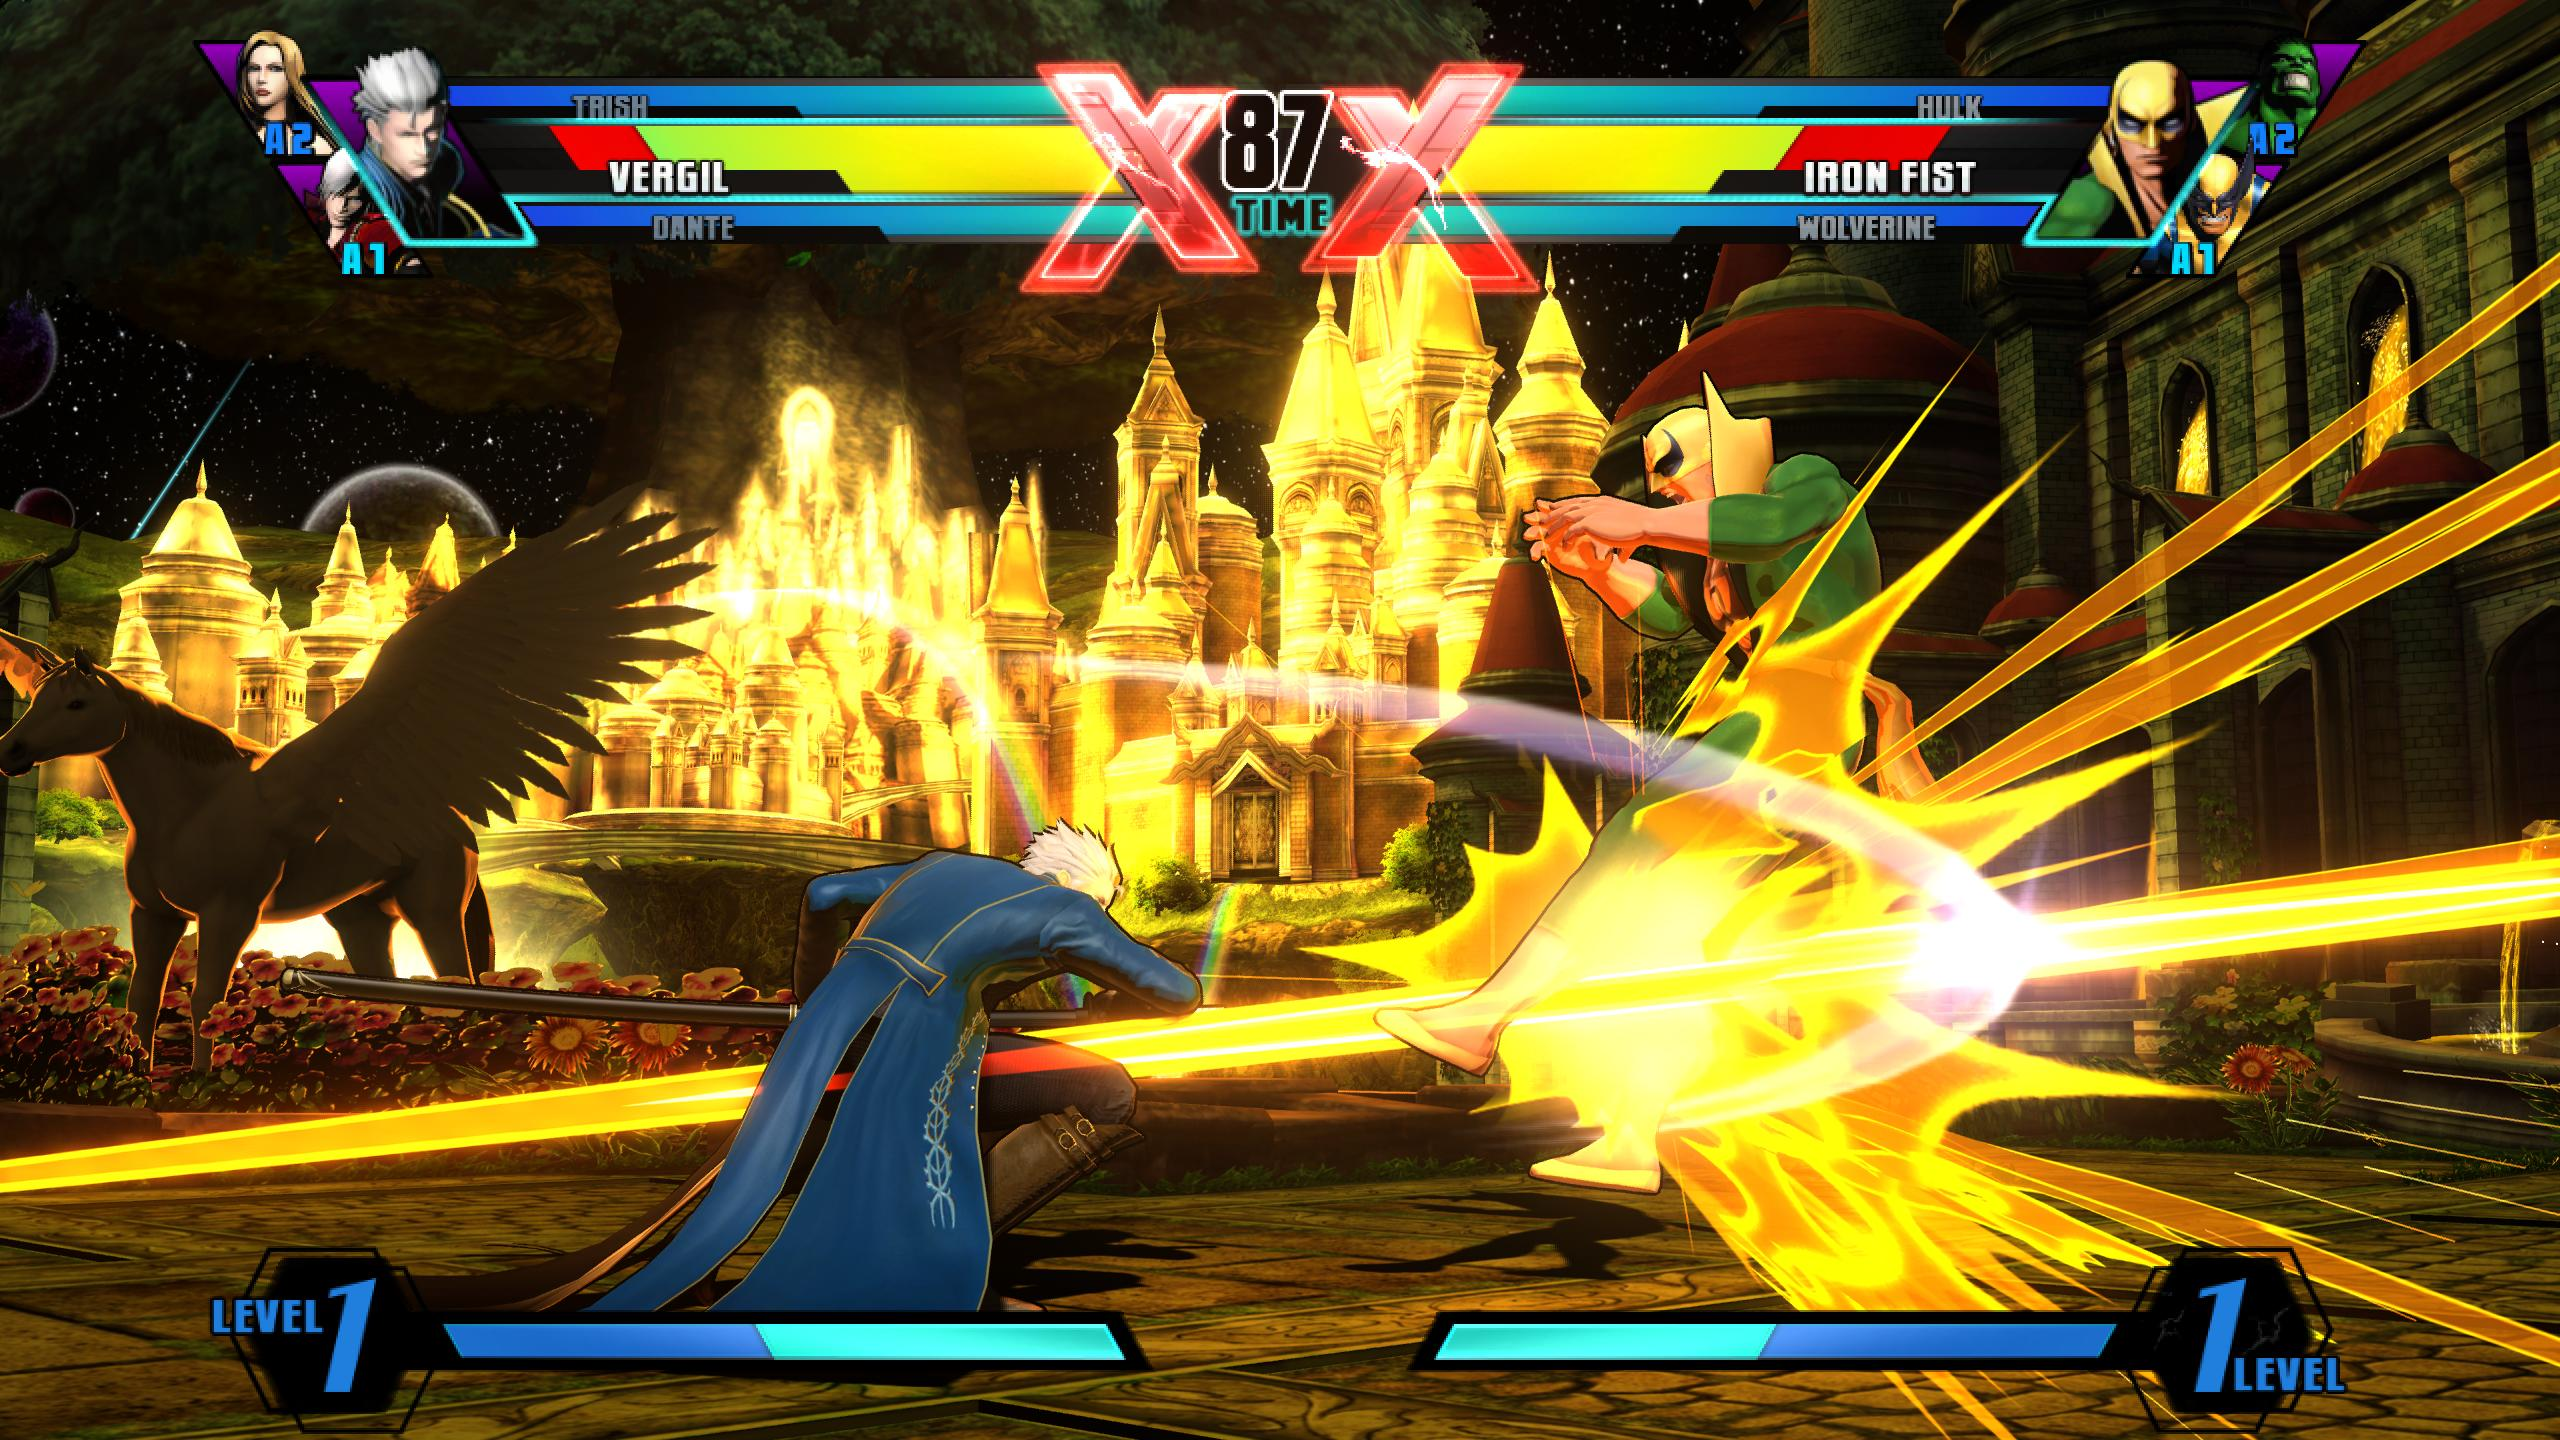 Vergil dans Ultimate Marvel vs. Capcom 3 6151123782_419df16c1a_o